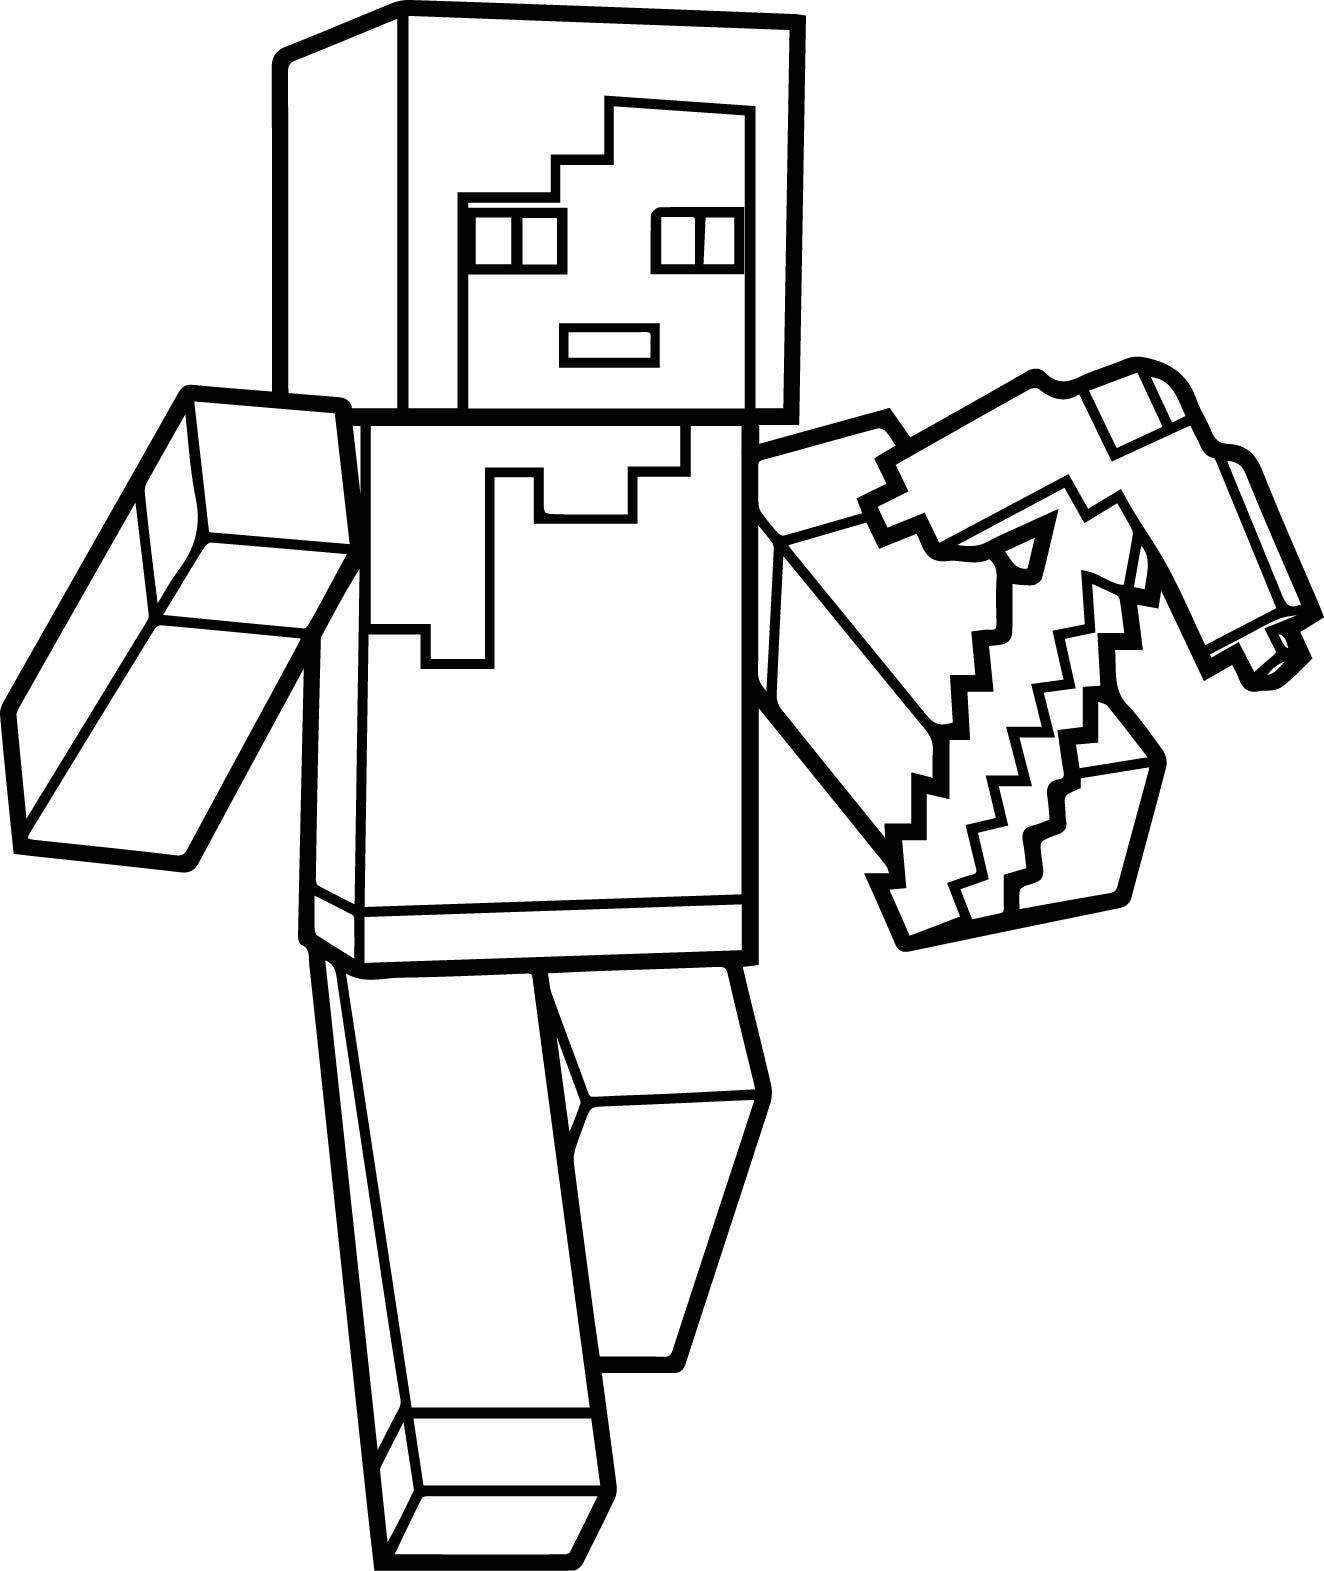 Minecraft Colouring Sheets Free Minecraft Printables Minecraft Coloring Pages Coloring Pages To Print